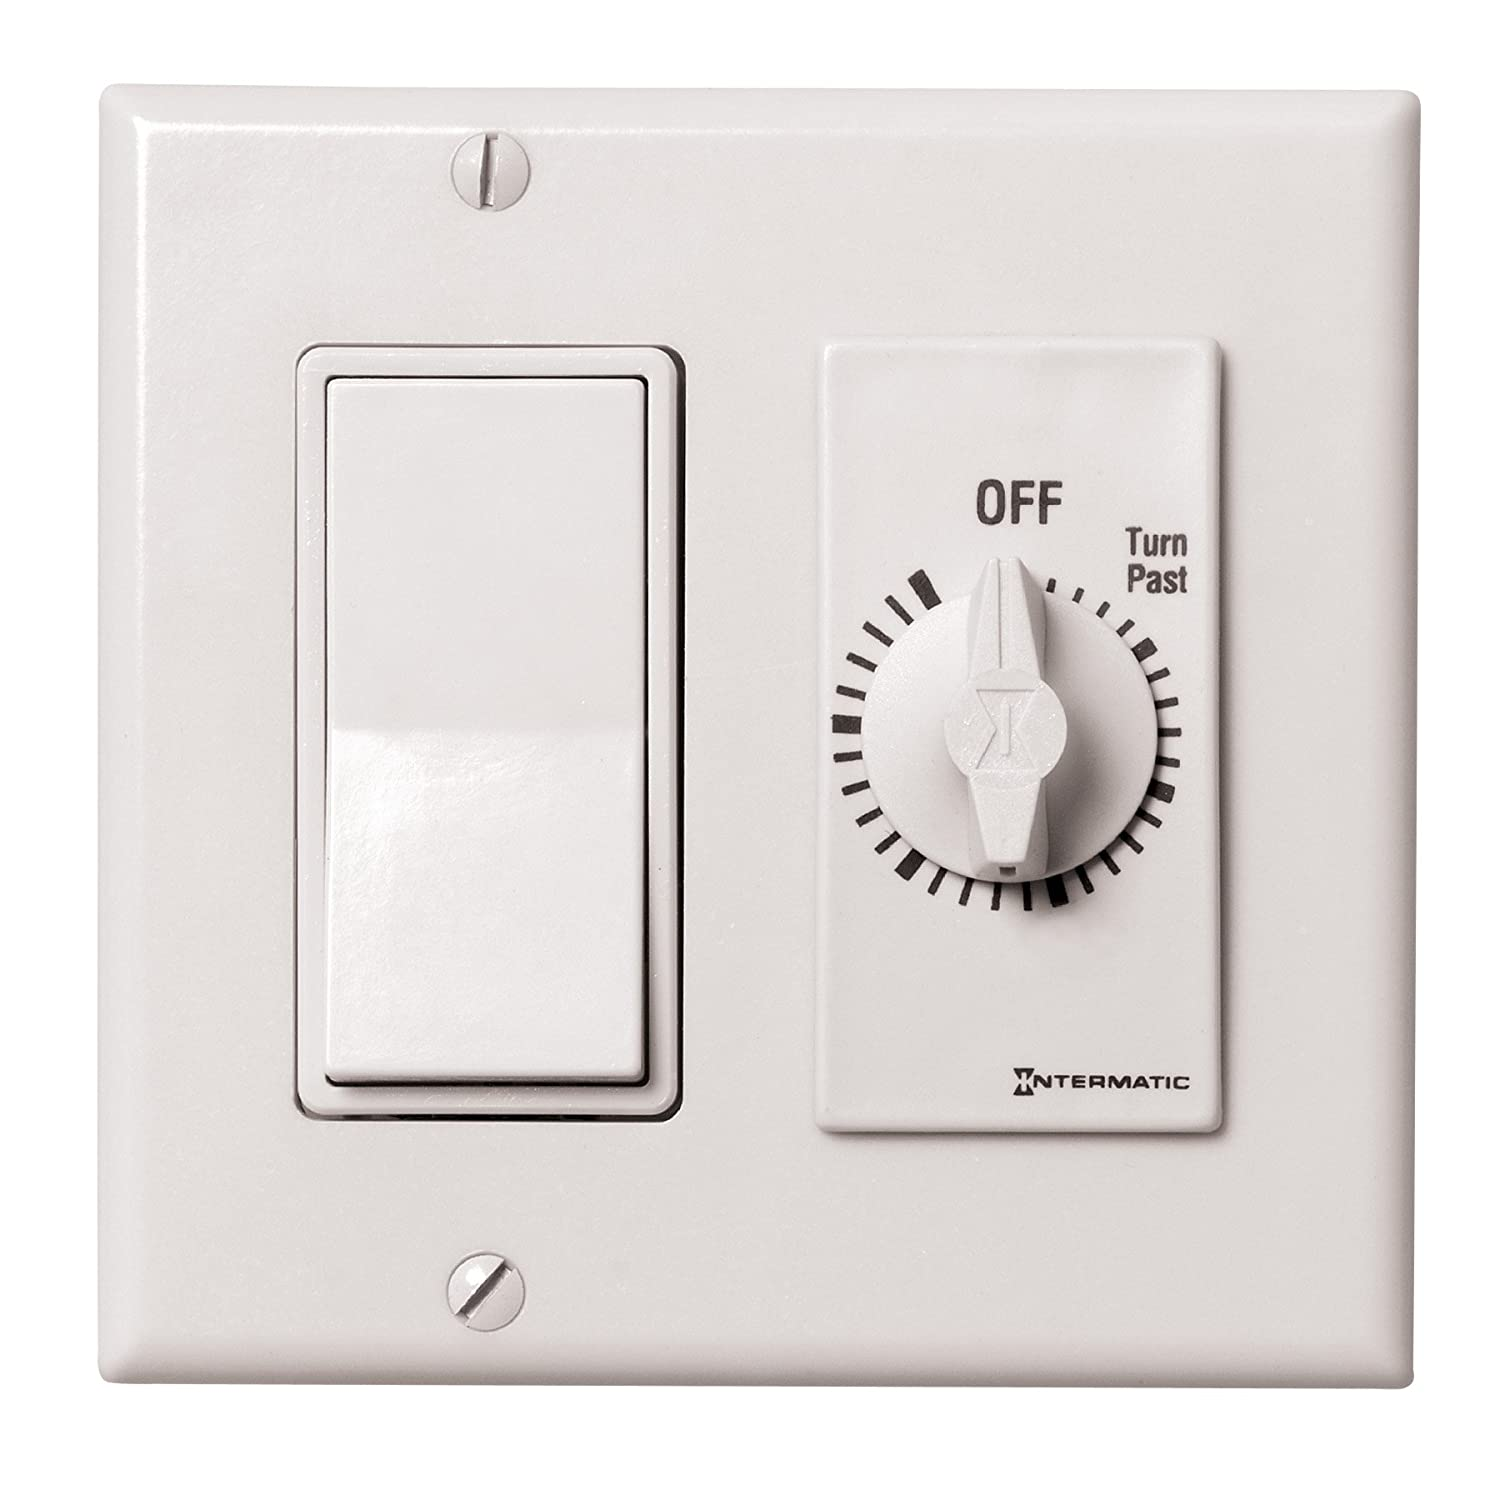 Intermatic FD60MWC 60-Minute Spring-Wound In-Wall Countdown Timer Switch for Auto-Off control of Fans and Lights White